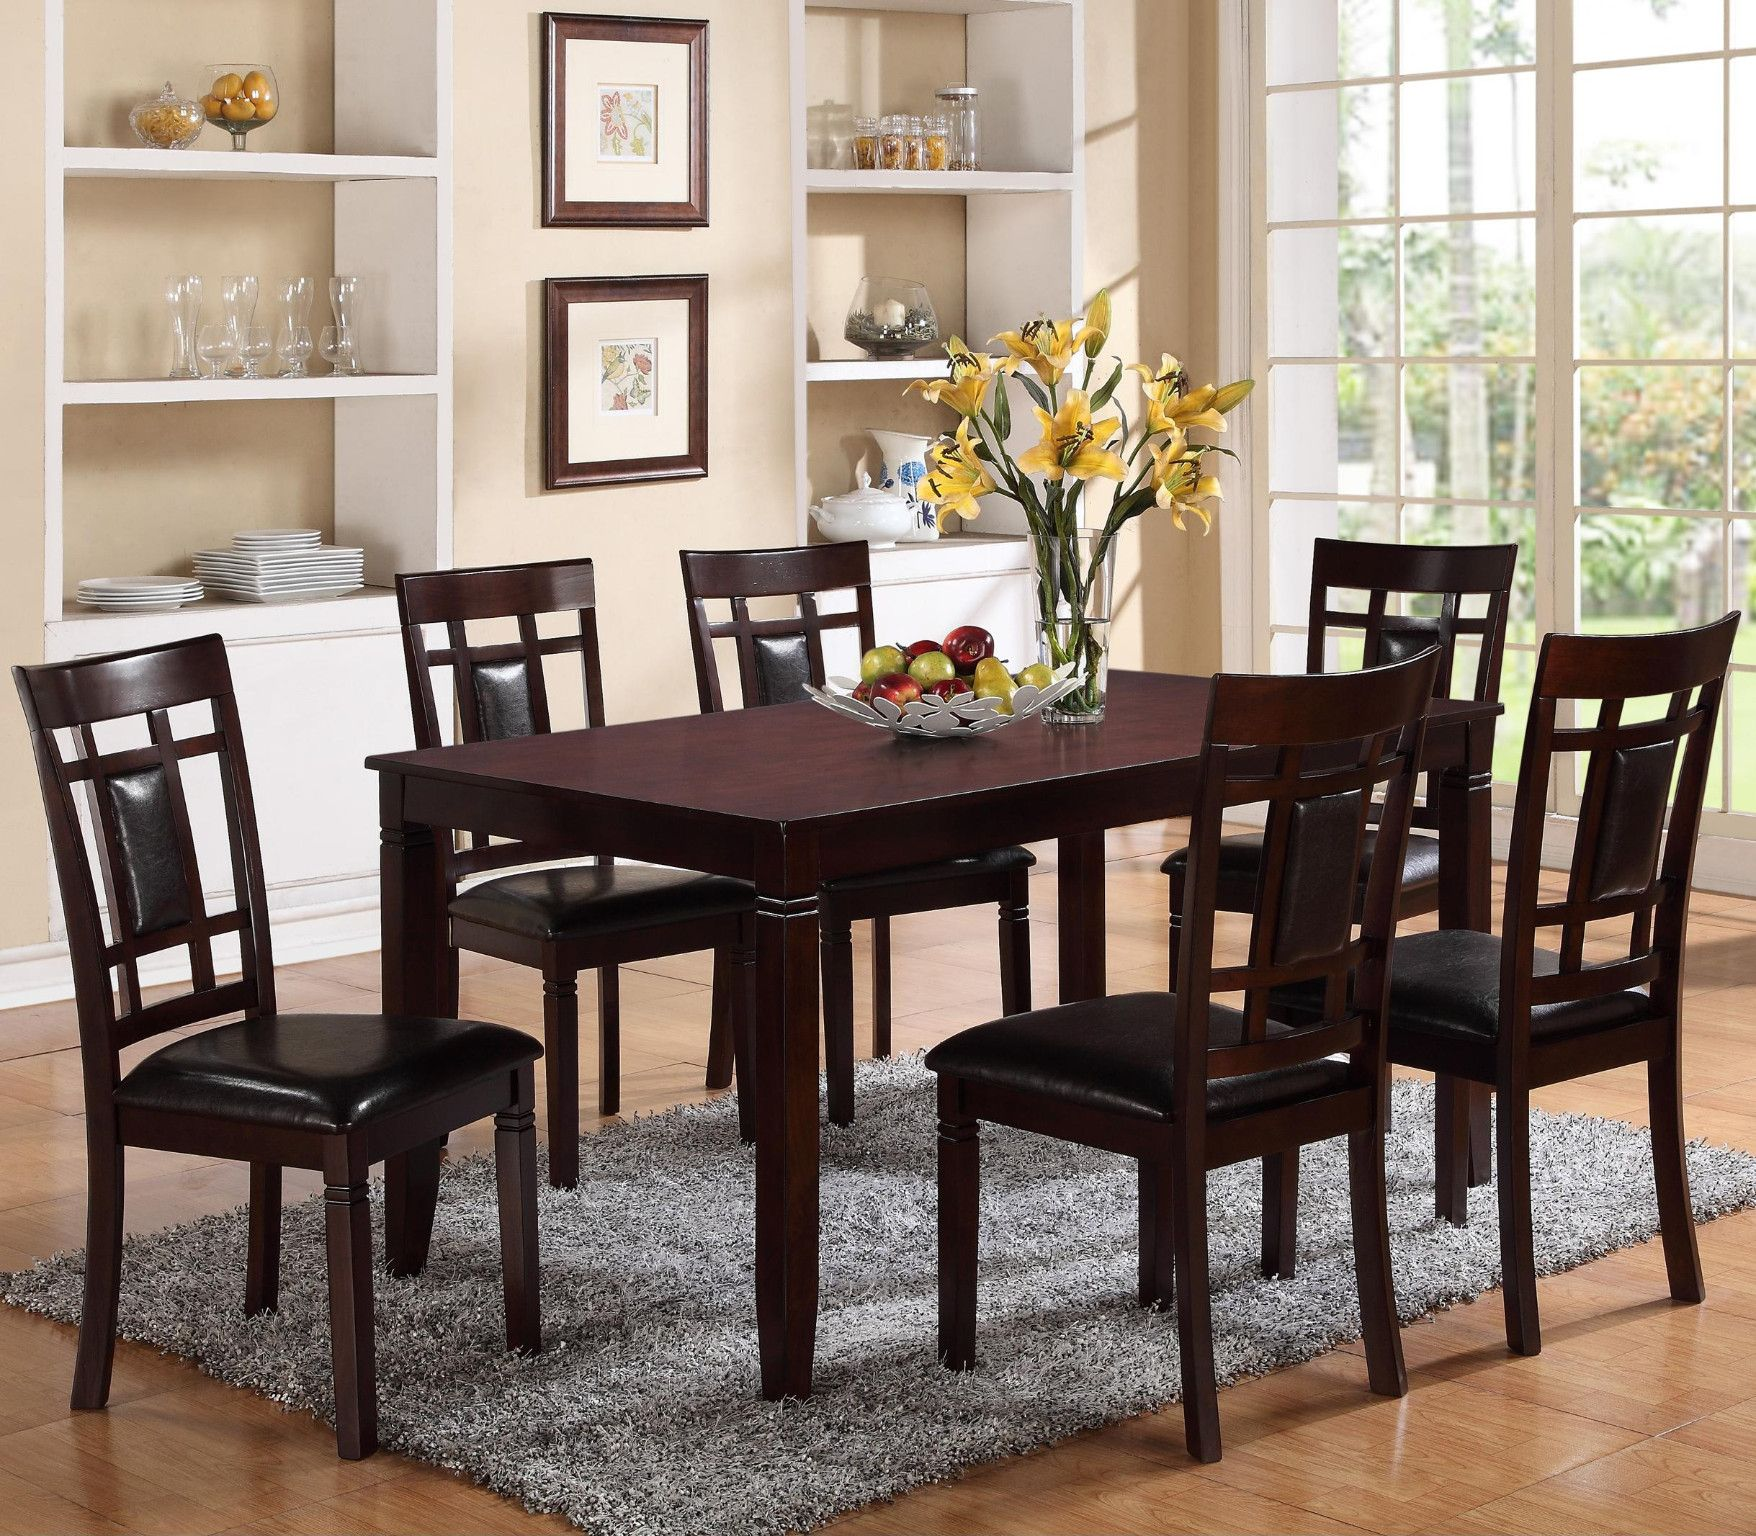 Paige 7 Piece Dinette Table And 6 Chairs 599 00 Table 36 X 60 X